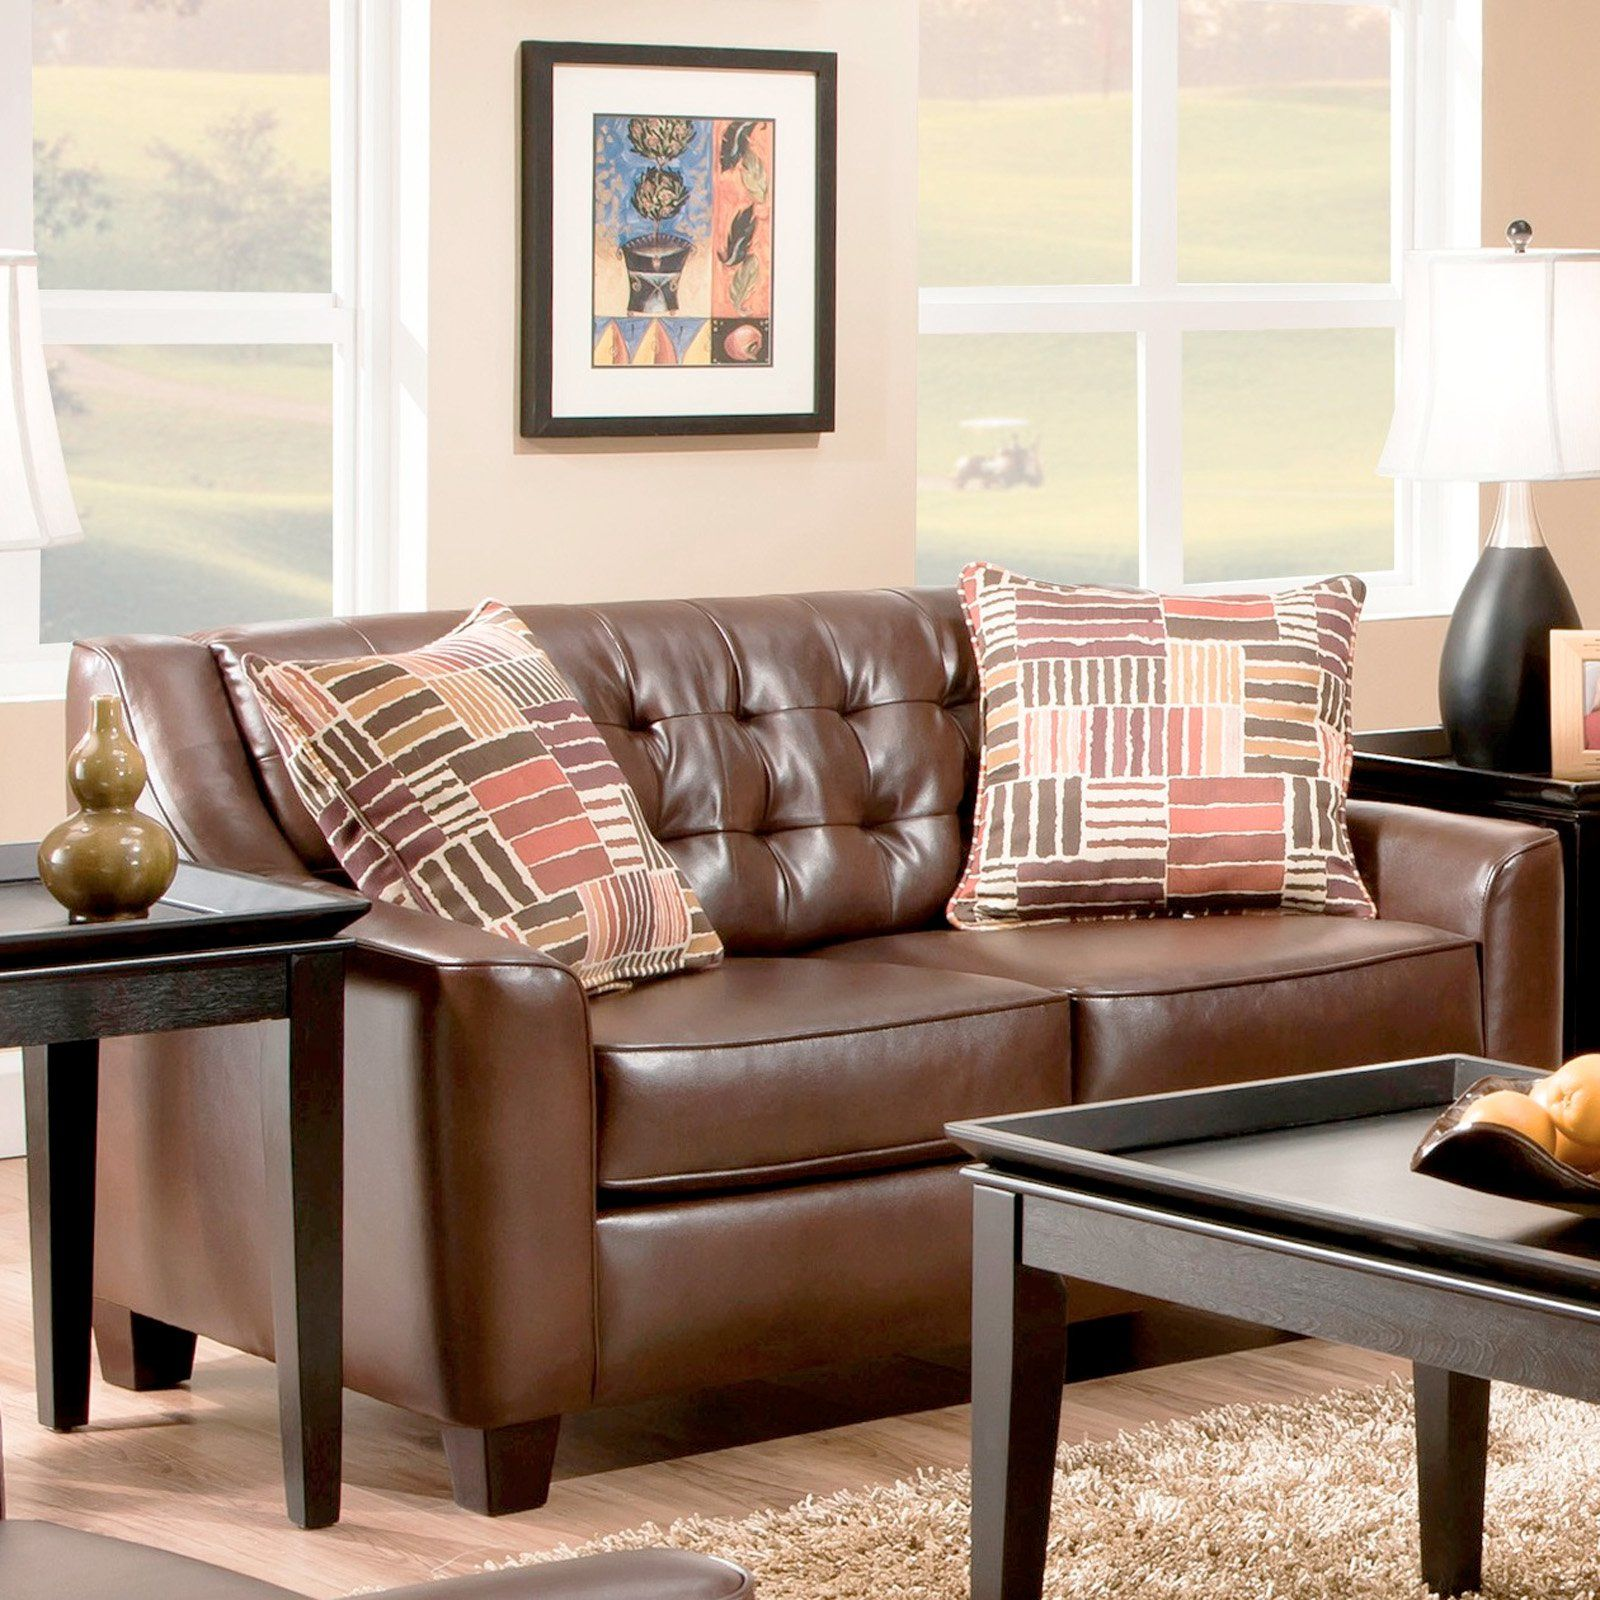 product brown plum today reclining design free shipping garden signature overstock gunsmoke dual by home oberson ashley loveseat